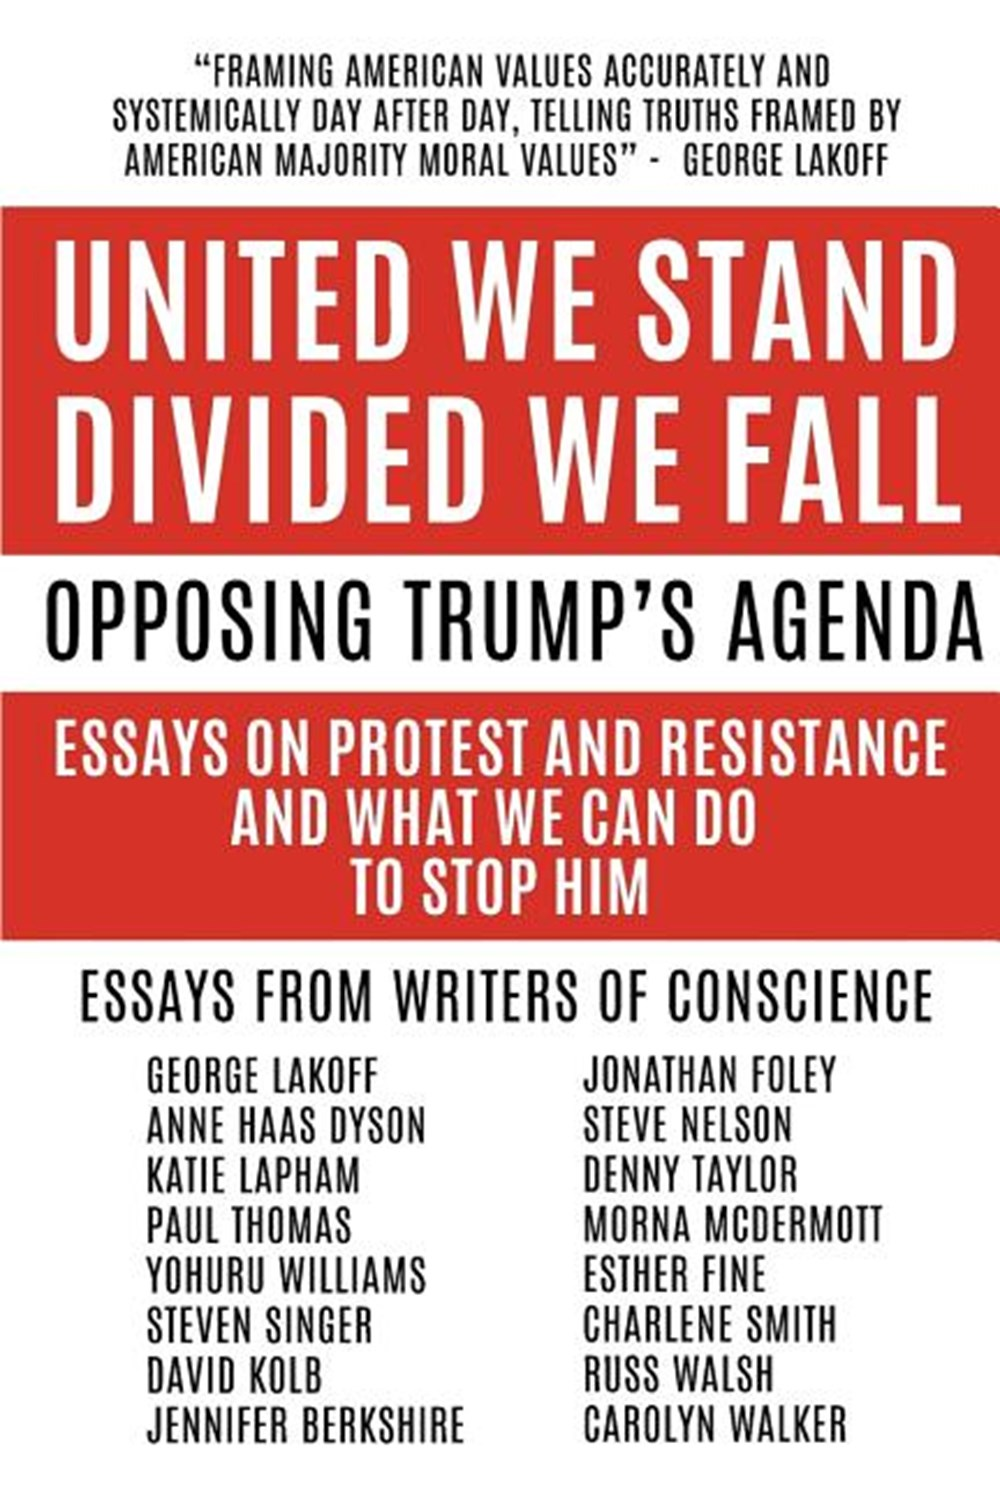 United We Stand Divided We Fall Opposing Trump's Agenda: Essays On Protest And Resistance And What W